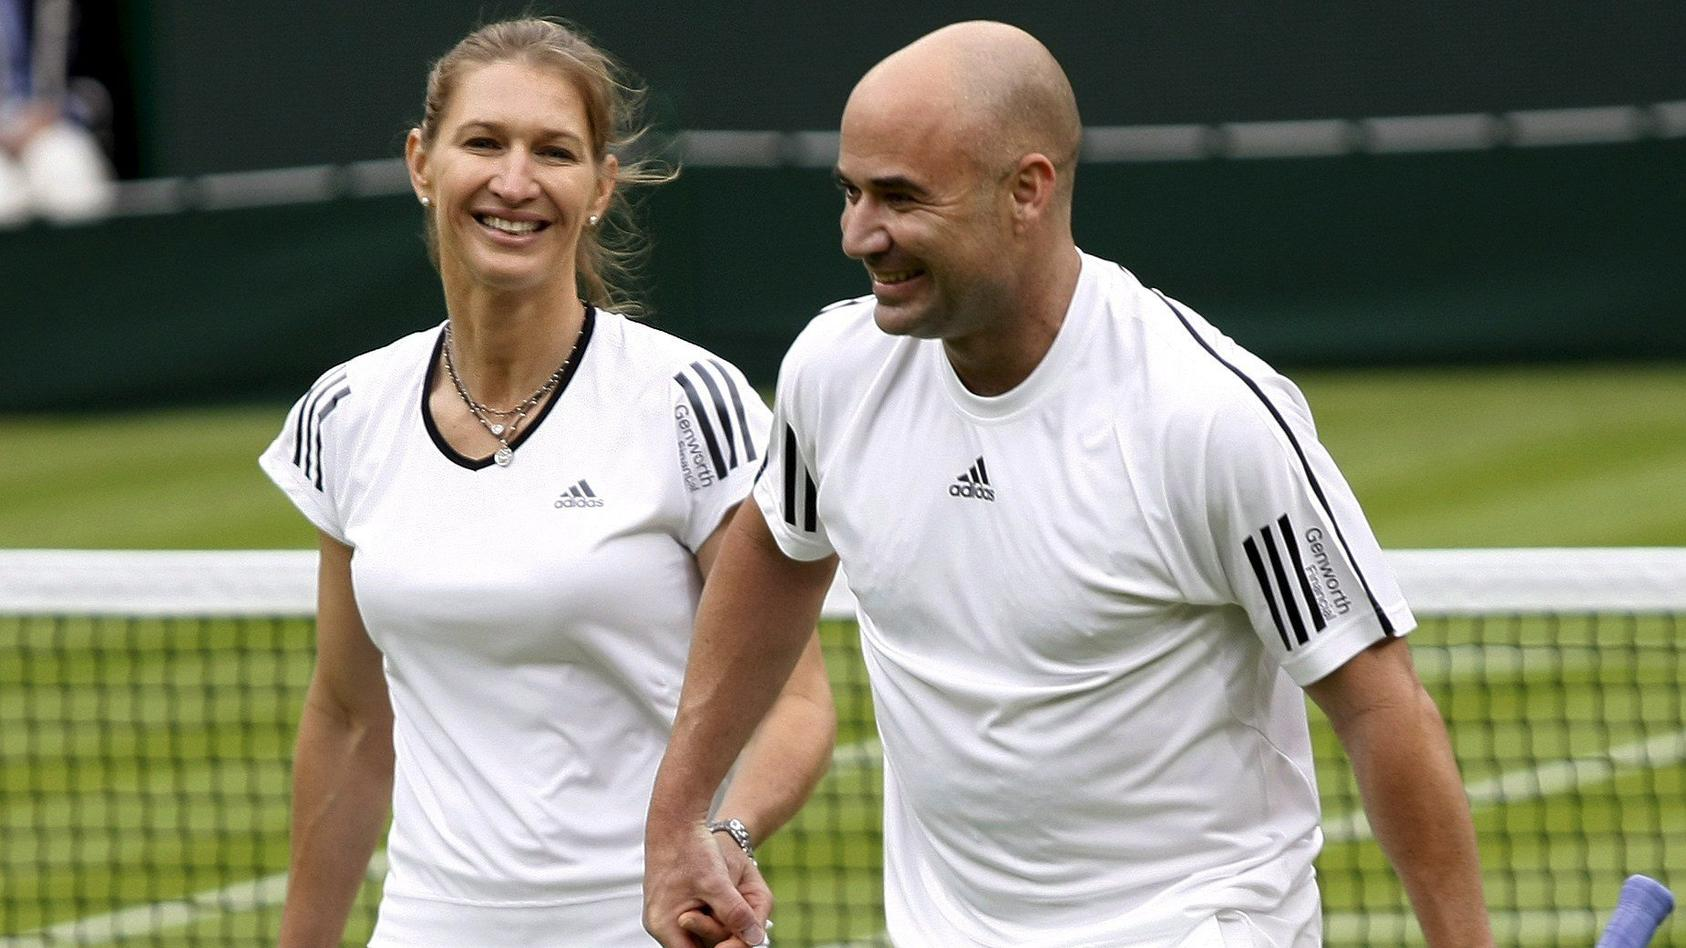 Andre Agassi wird 50